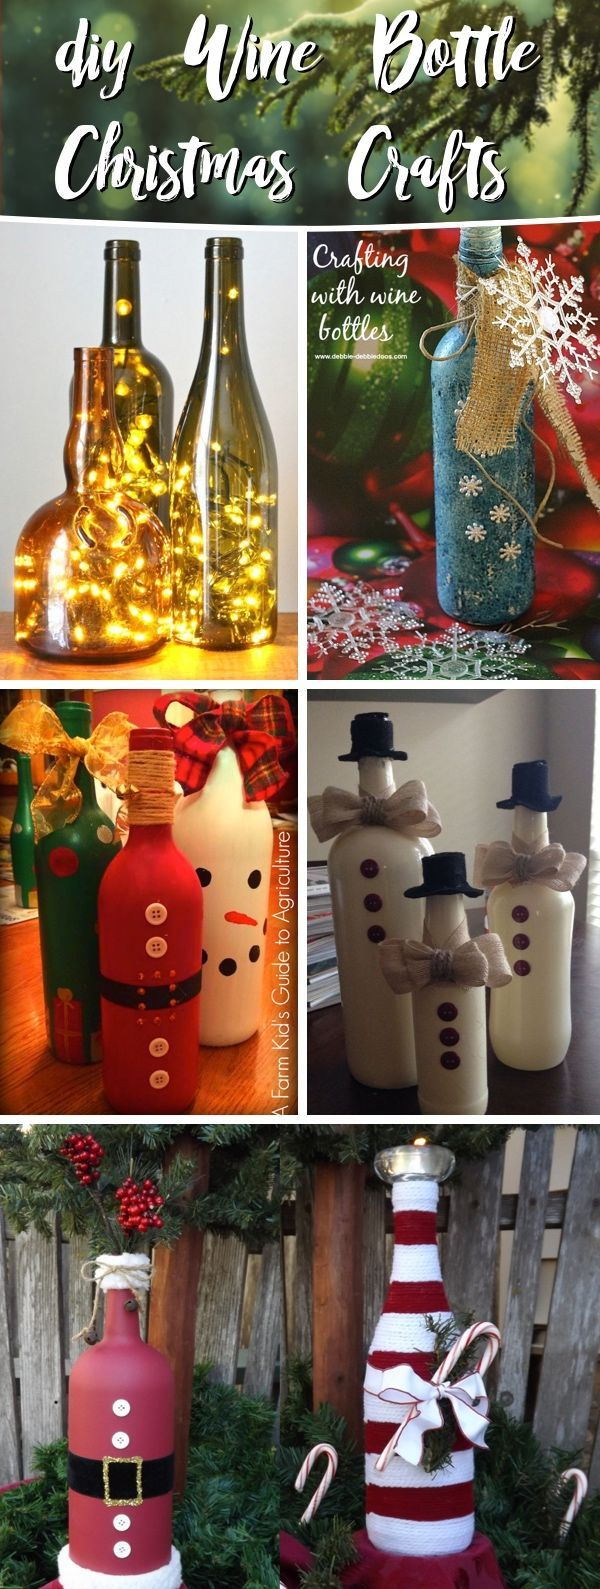 Christmas decorations cork - 20 Wine Bottle Christmas Crafts To Go For A Festive Decor Blended With Some Upcycling